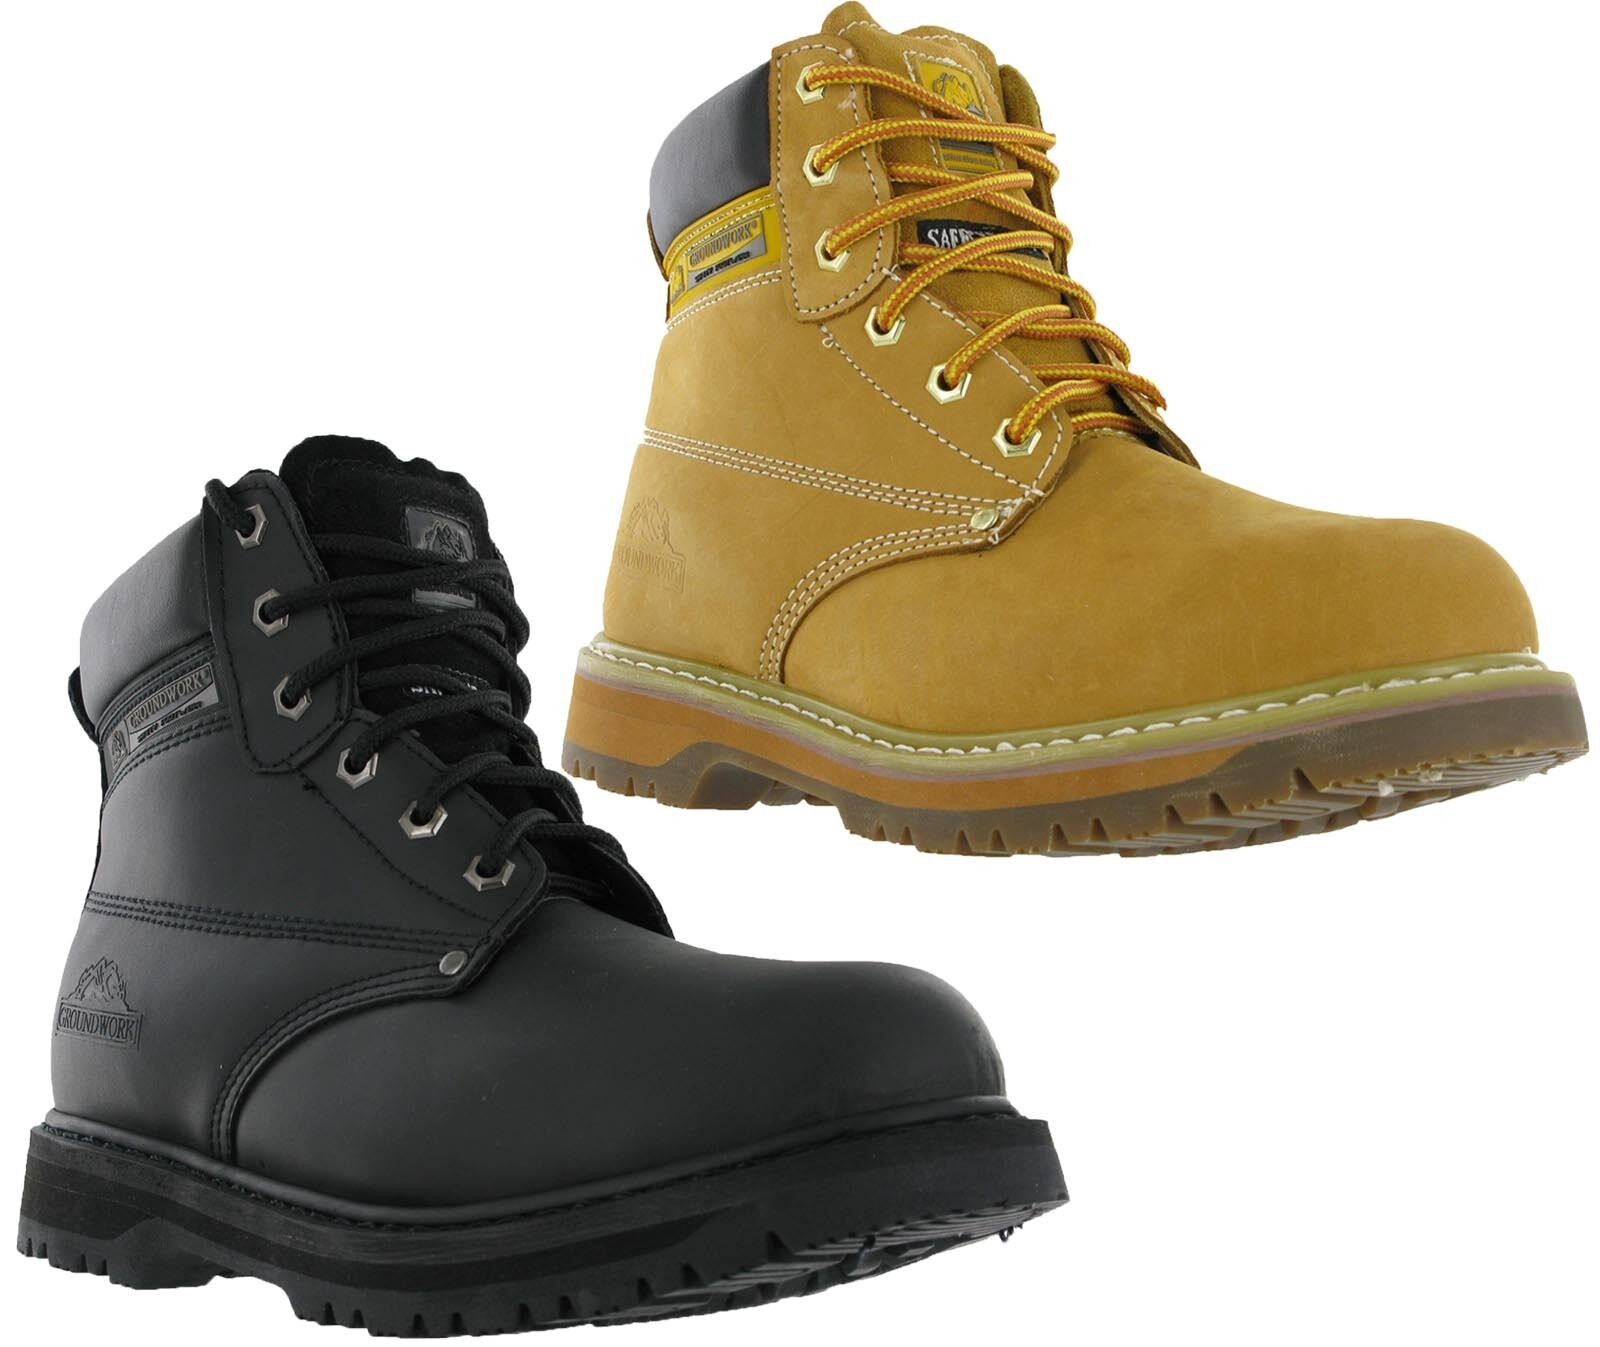 Groundwork Mens Leather Safety Steel Toe Cap Work Boots shoes UK4-13